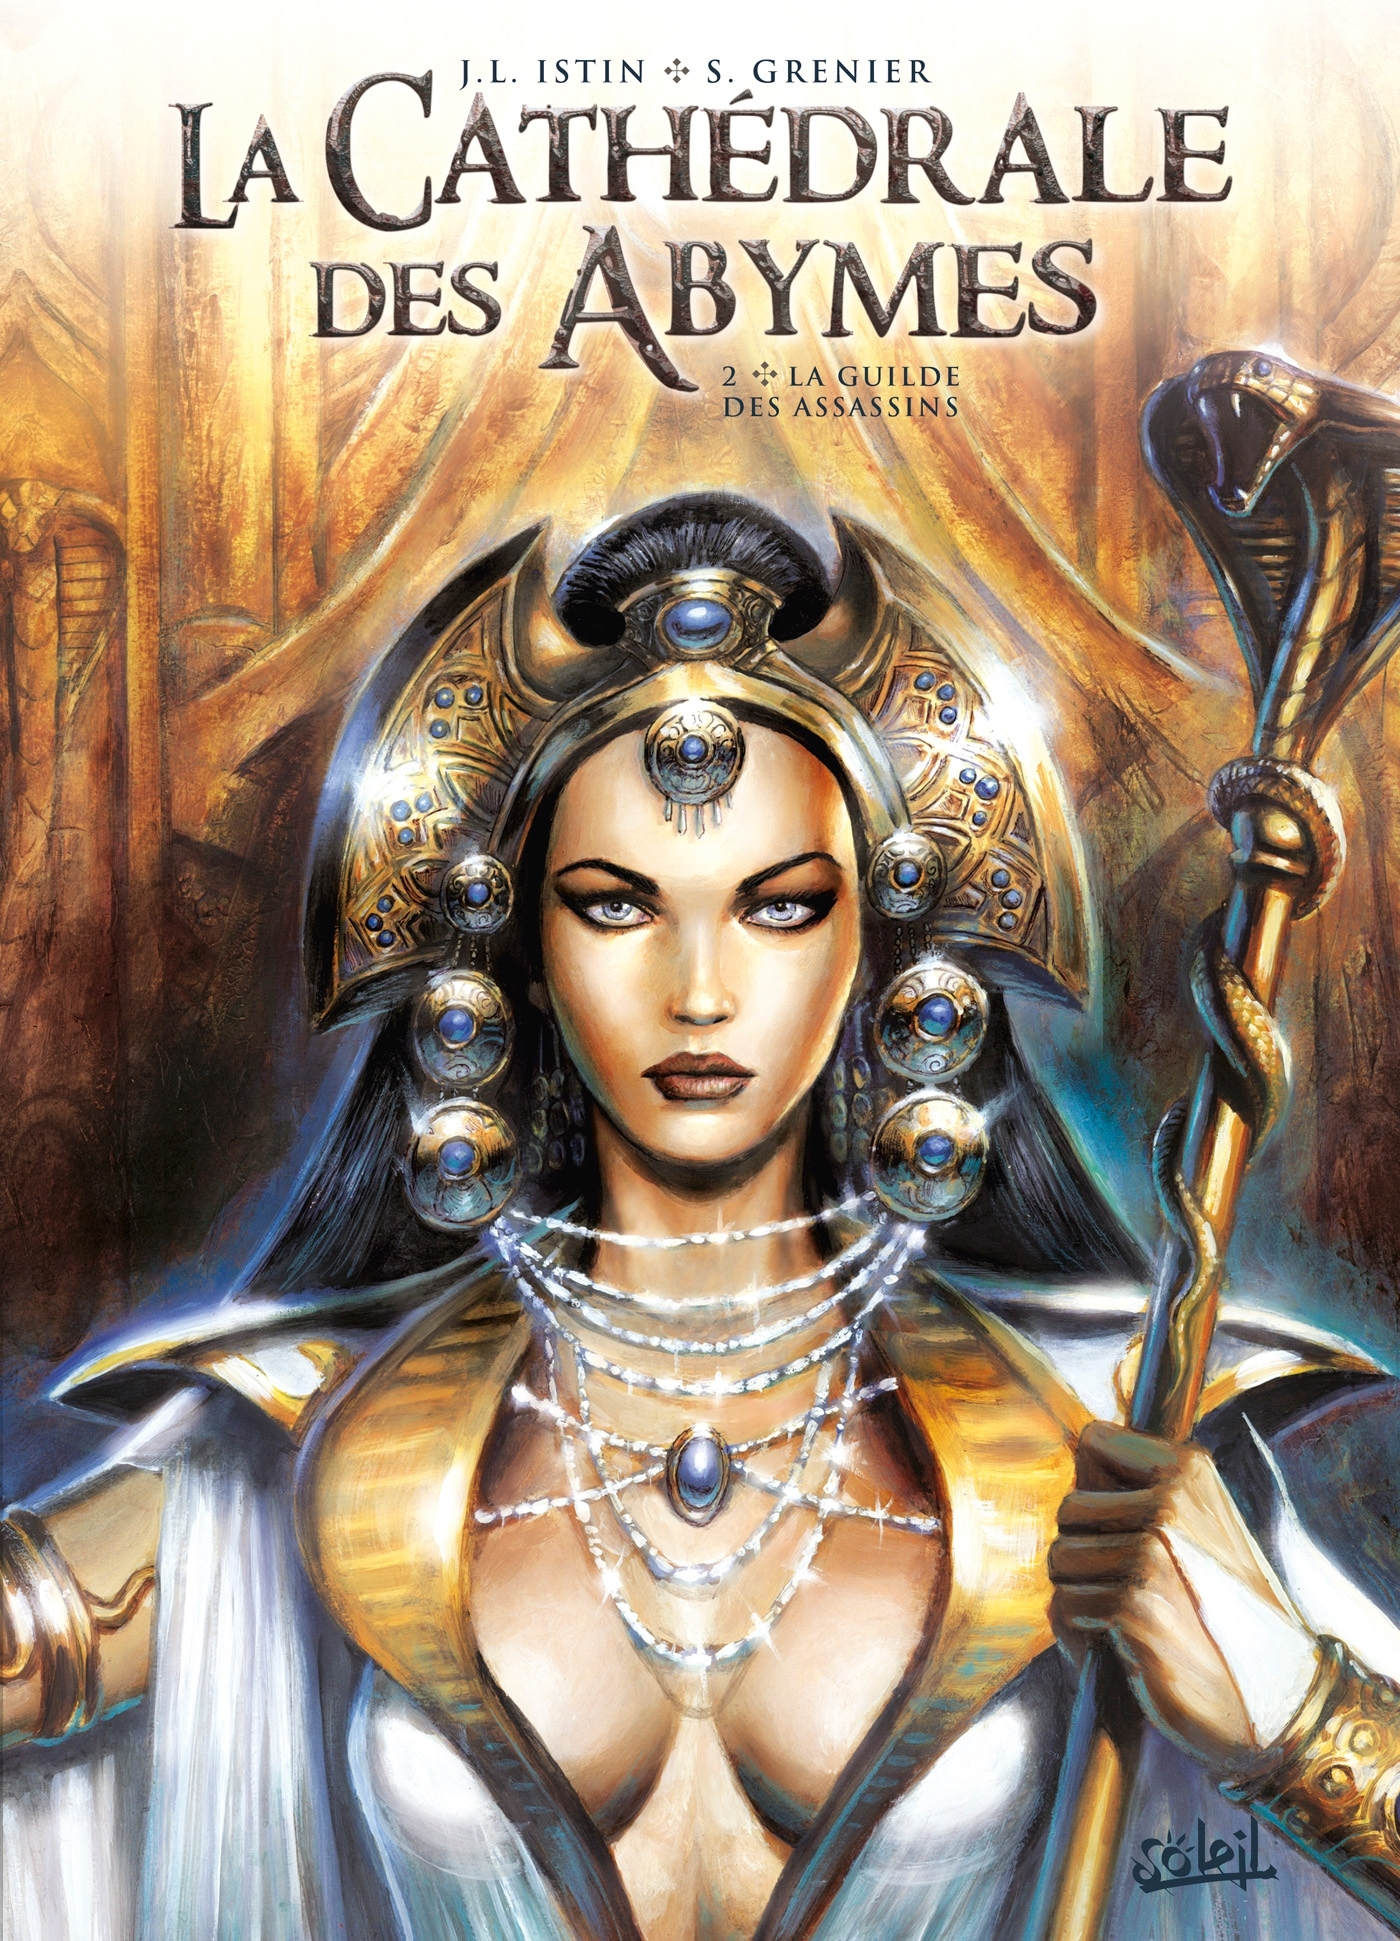 CATHEDRALE DES ABYMES - T02 - CATHEDRALE DES ABYMES 02 - LA GUILDE DES ASSASSINS